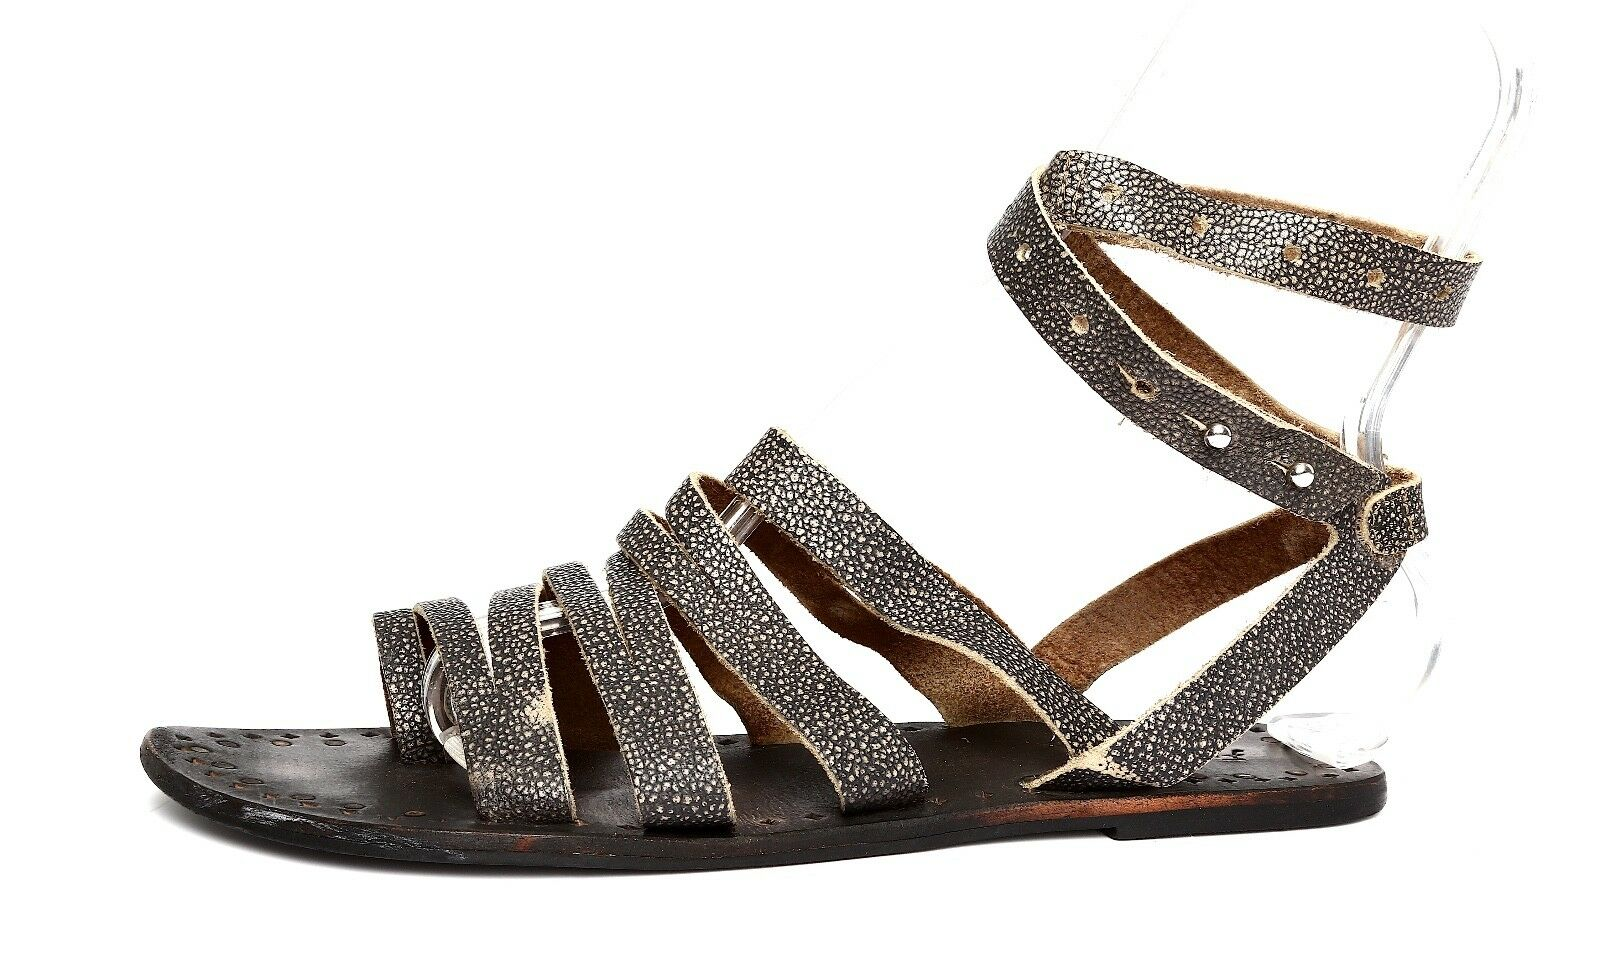 Free People Women's Black Leather Ankle Strap Flat Sandals Sz 40